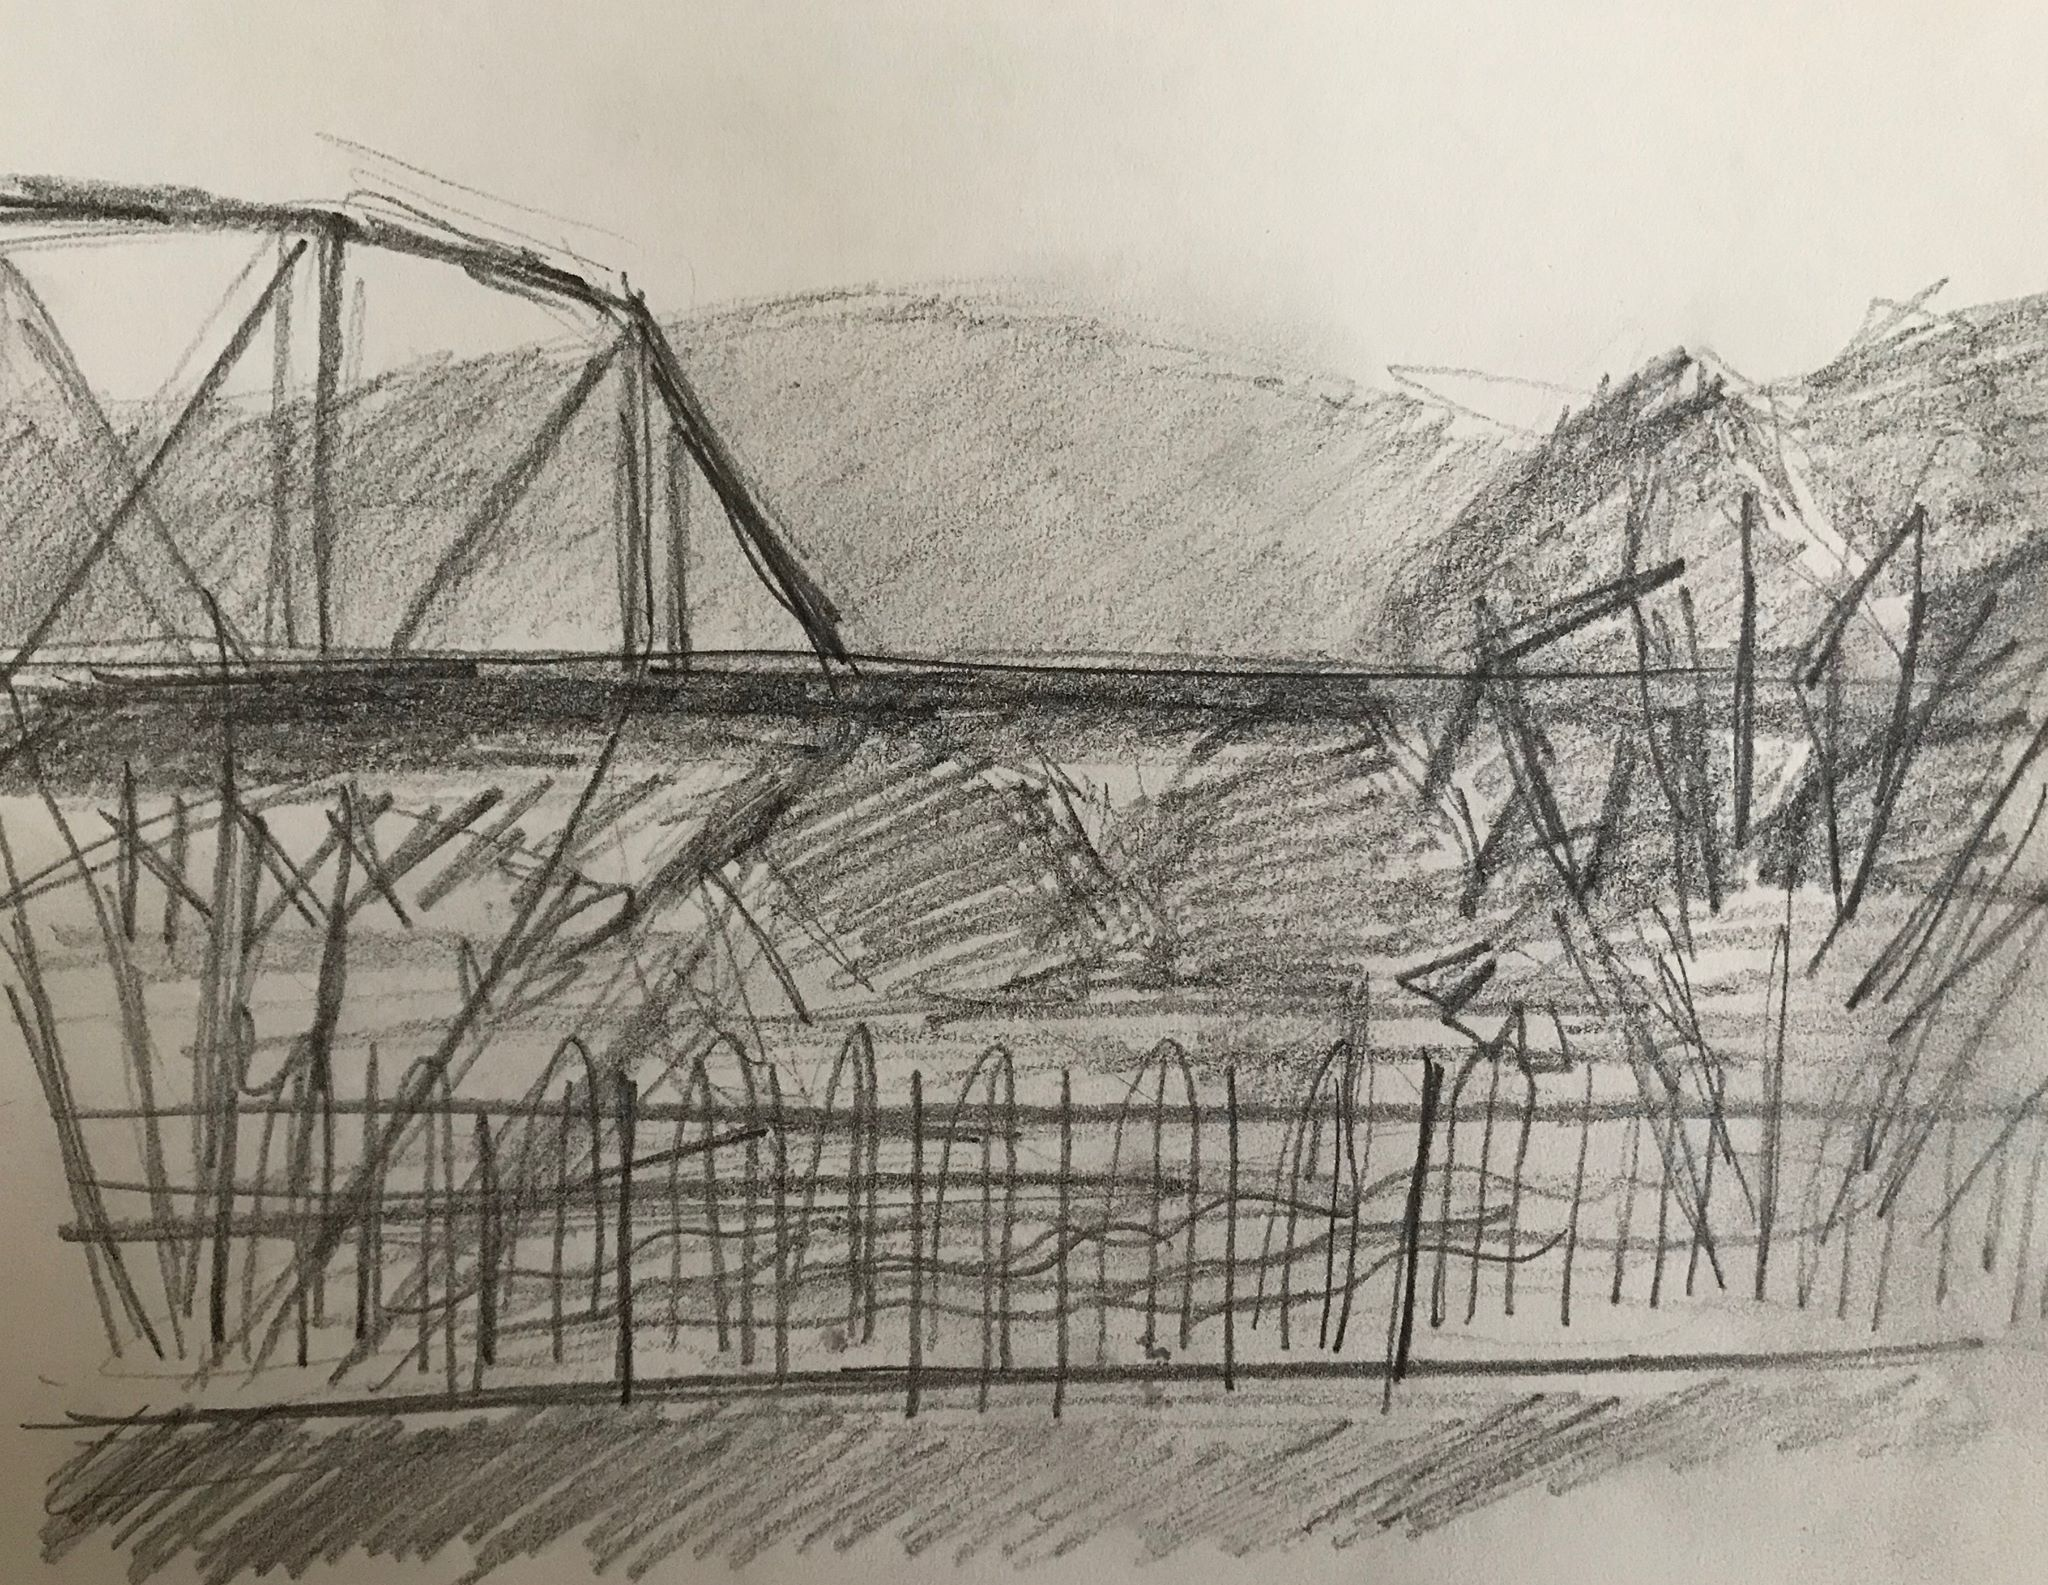 Train Bridge over the Merging Rivers , pencil on paper, 6x8 inches